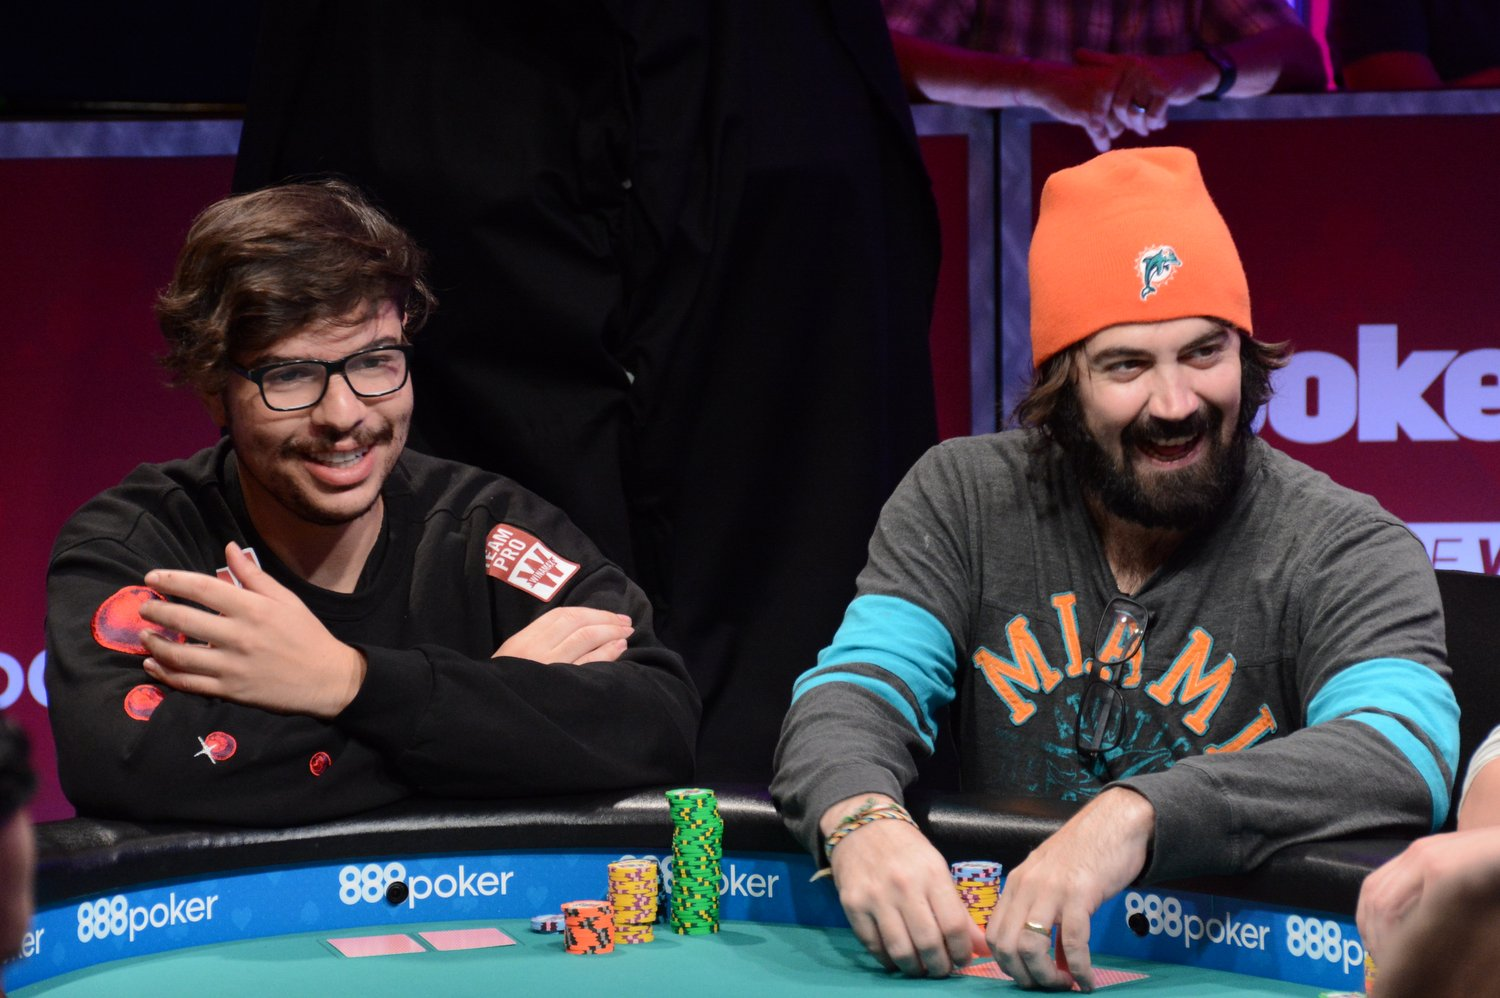 Mustapha Kanit & Jason Mercier